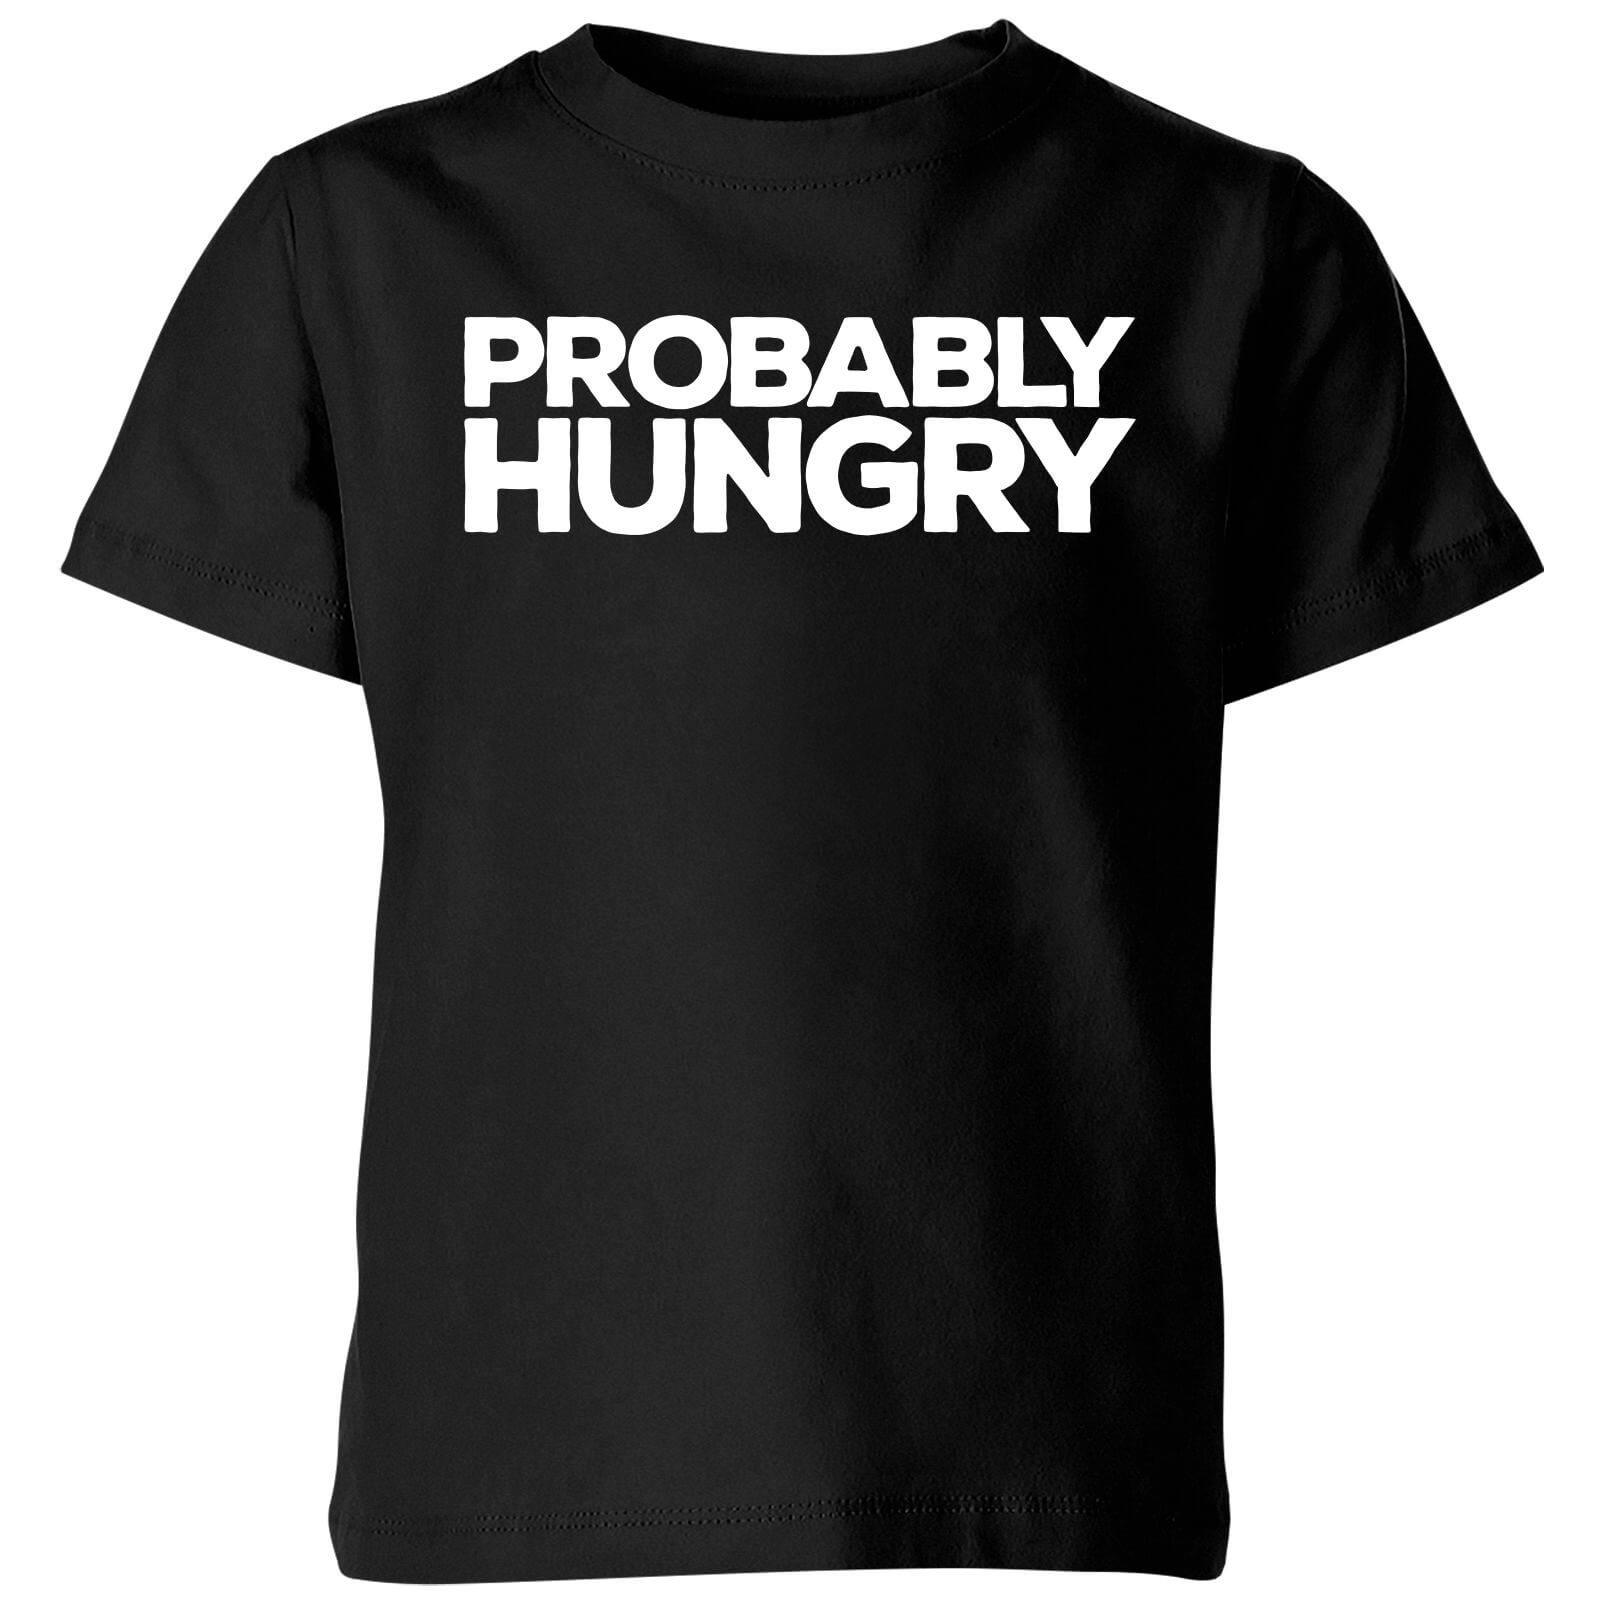 Probably Hungry Kids T-Shirt - Black